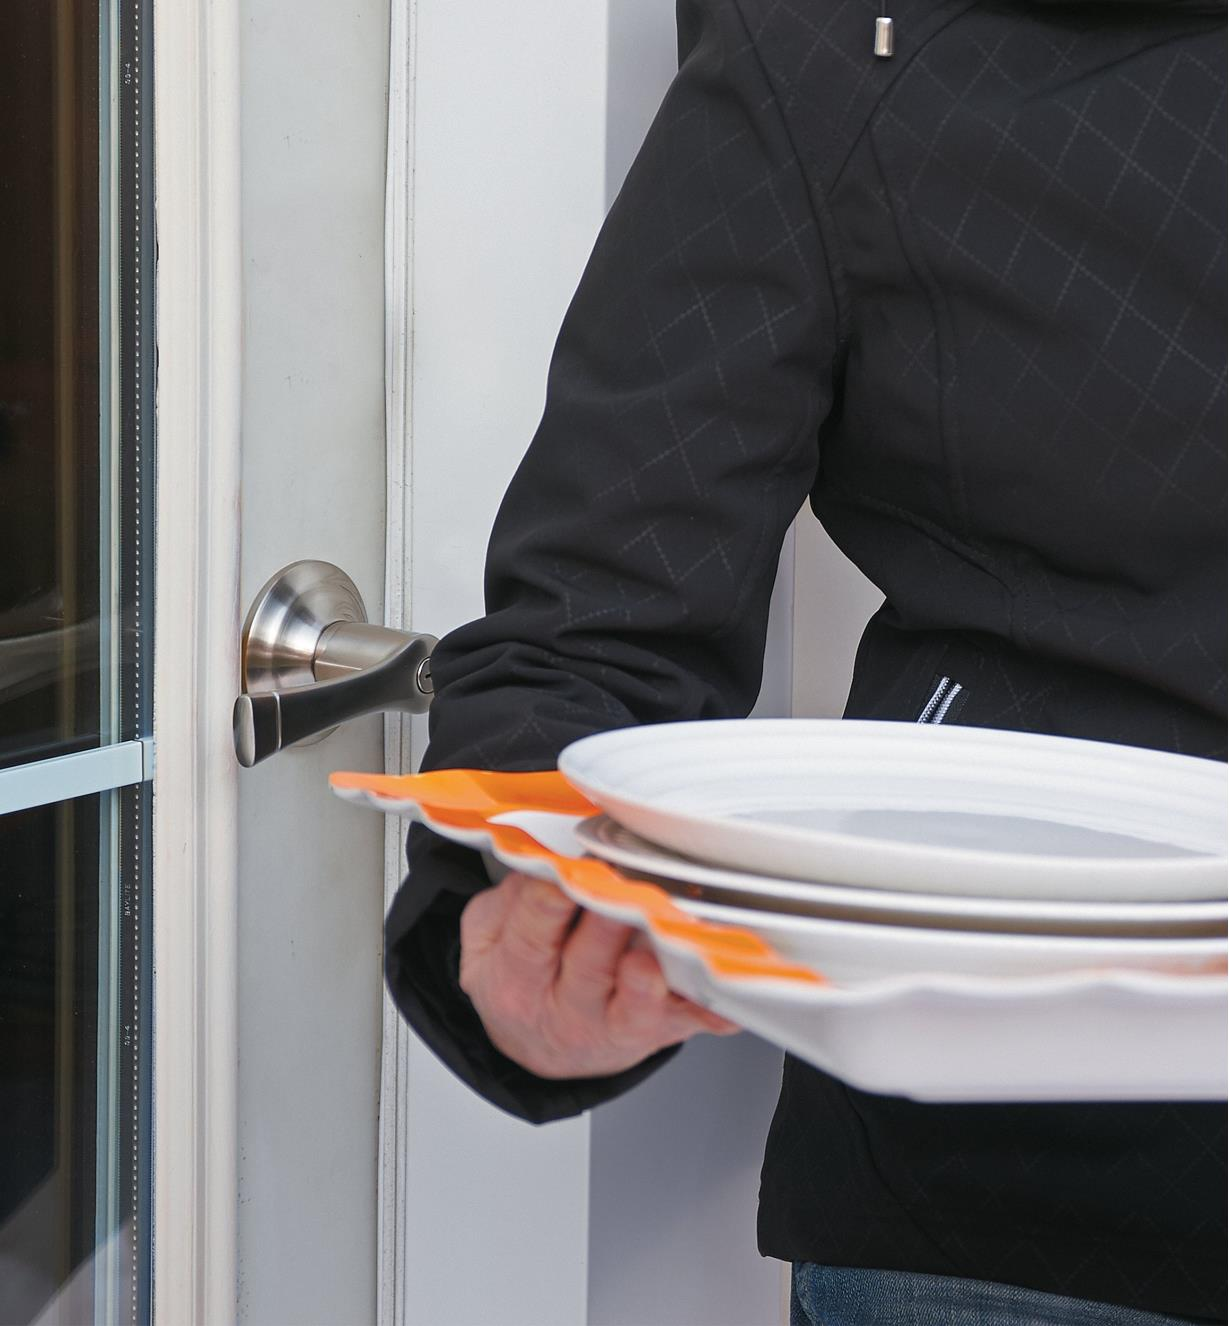 A woman carrying a tray of dishes opens a door with the push of her elbow on the handle